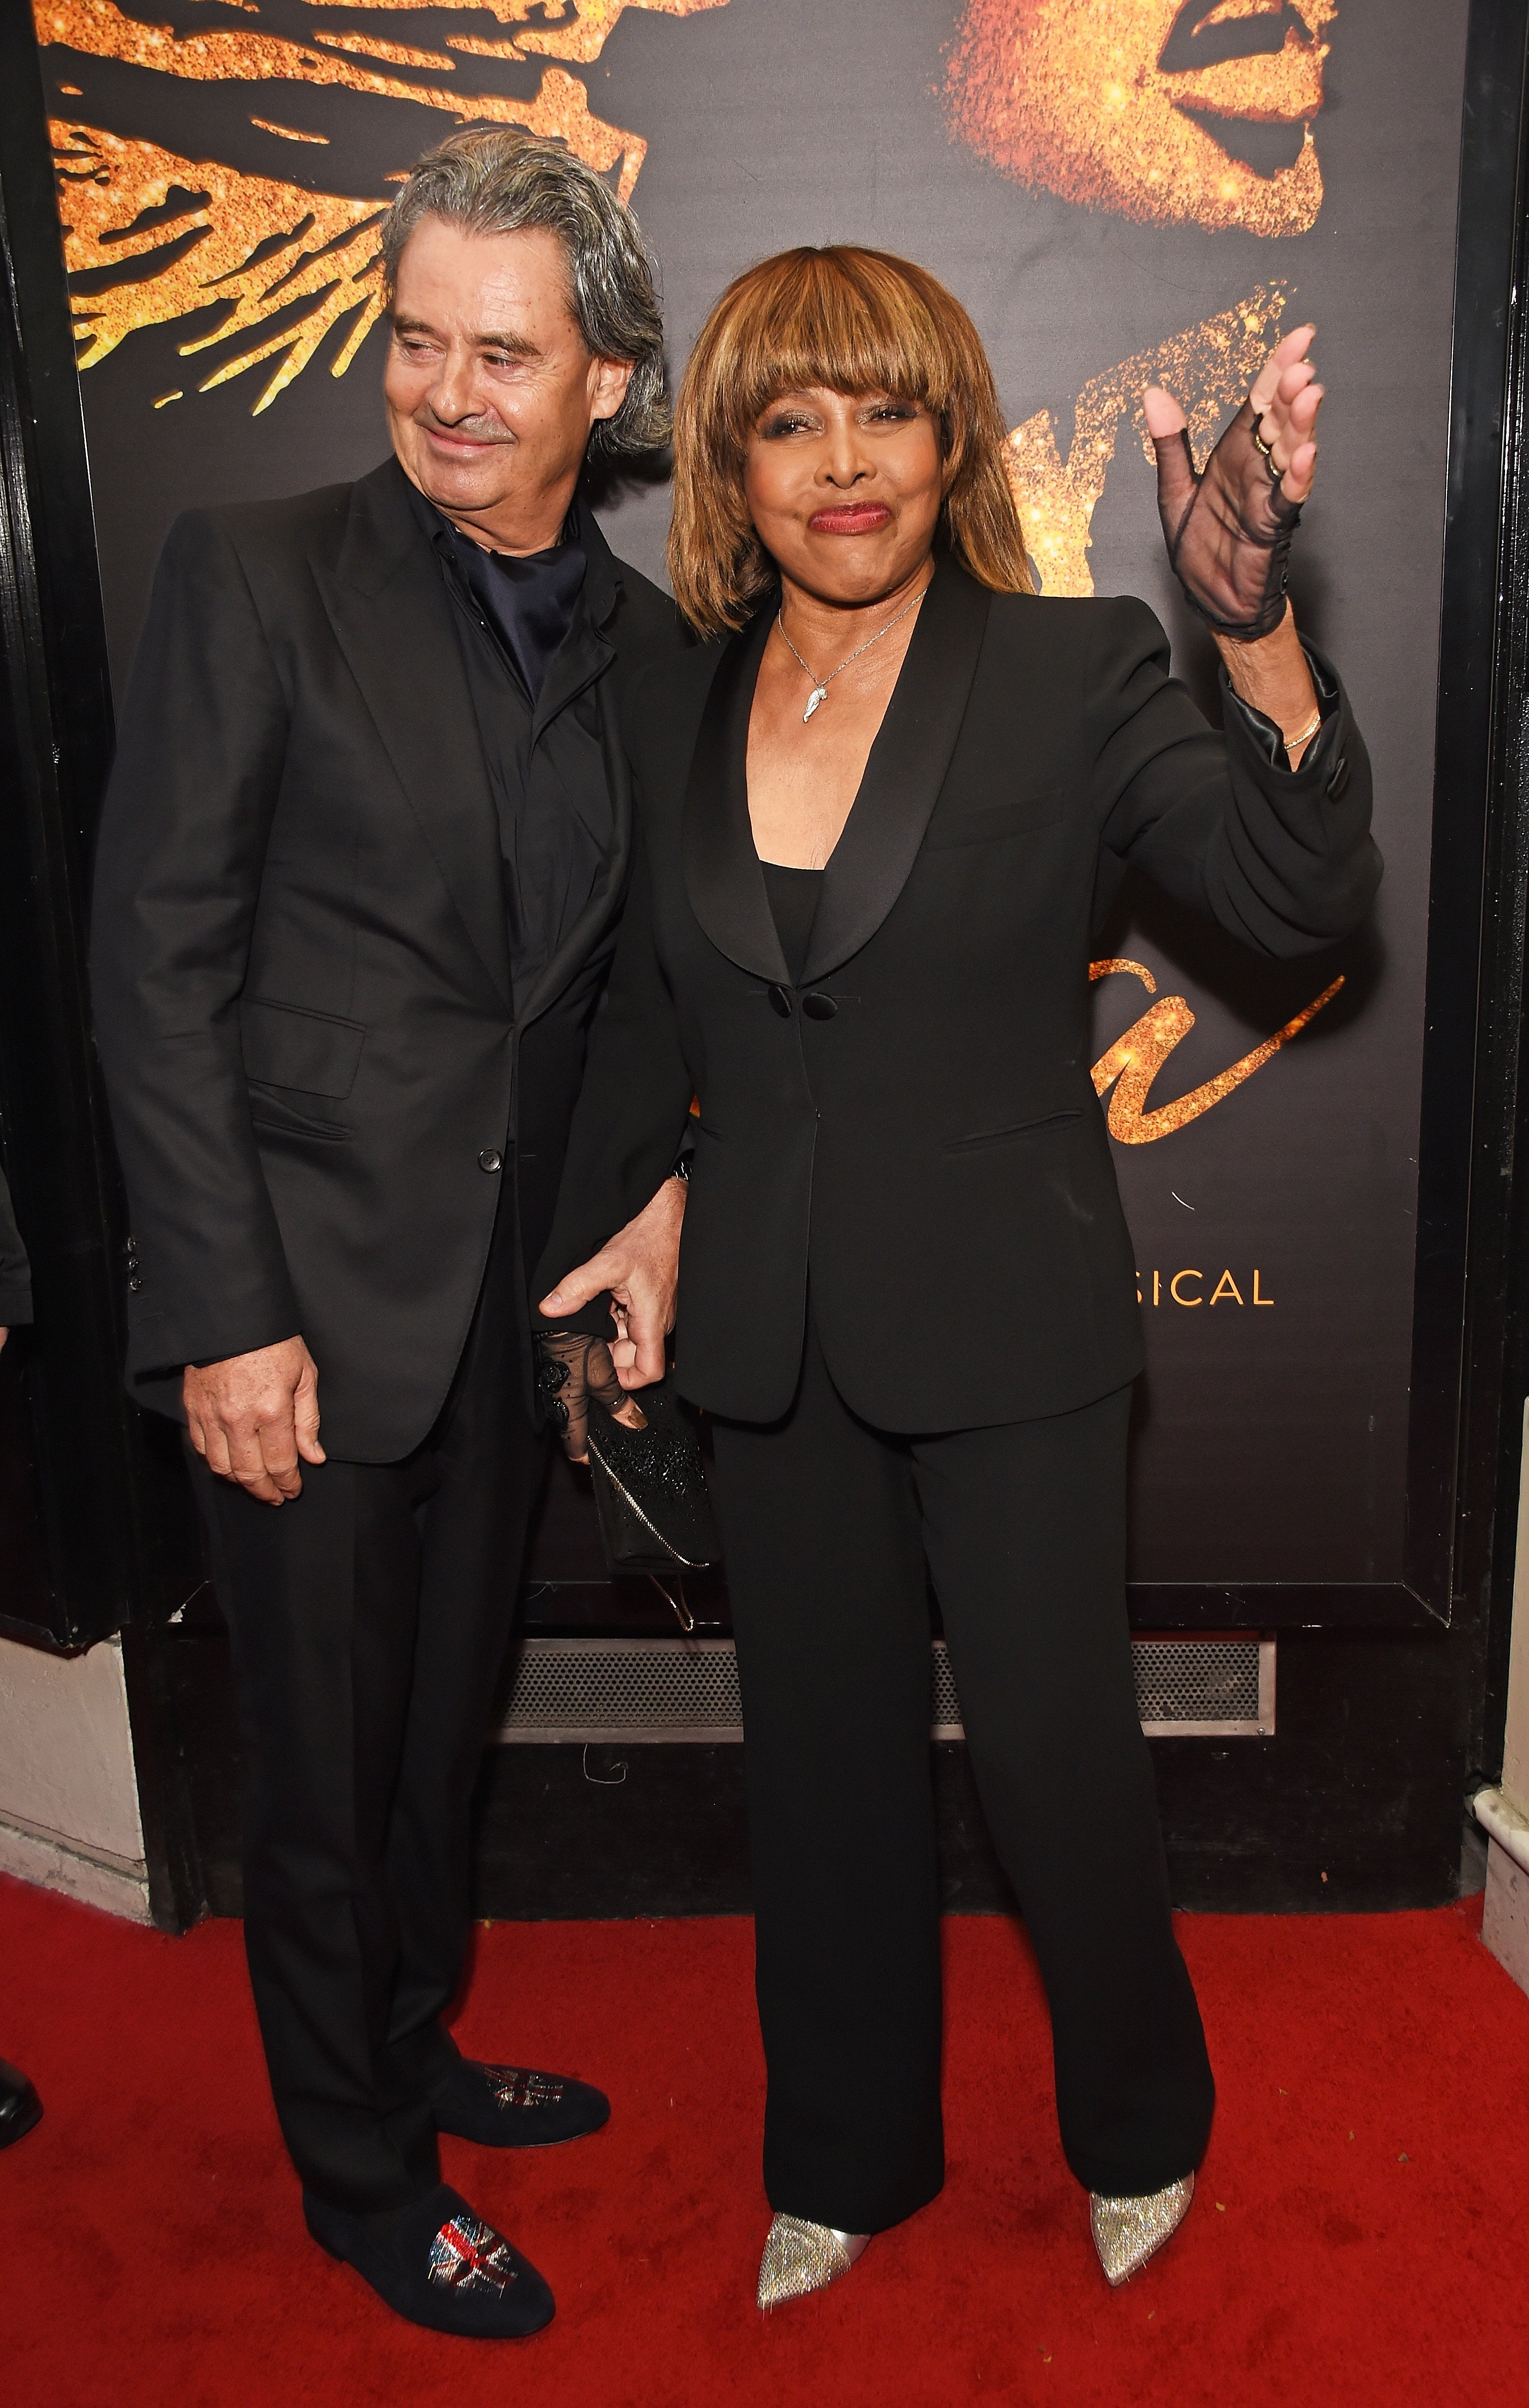 """Erwin Bach and Tina Turner at the press night performance of """"Tina: The Tina Turner Musical"""" on April 17, 2018 in London. 